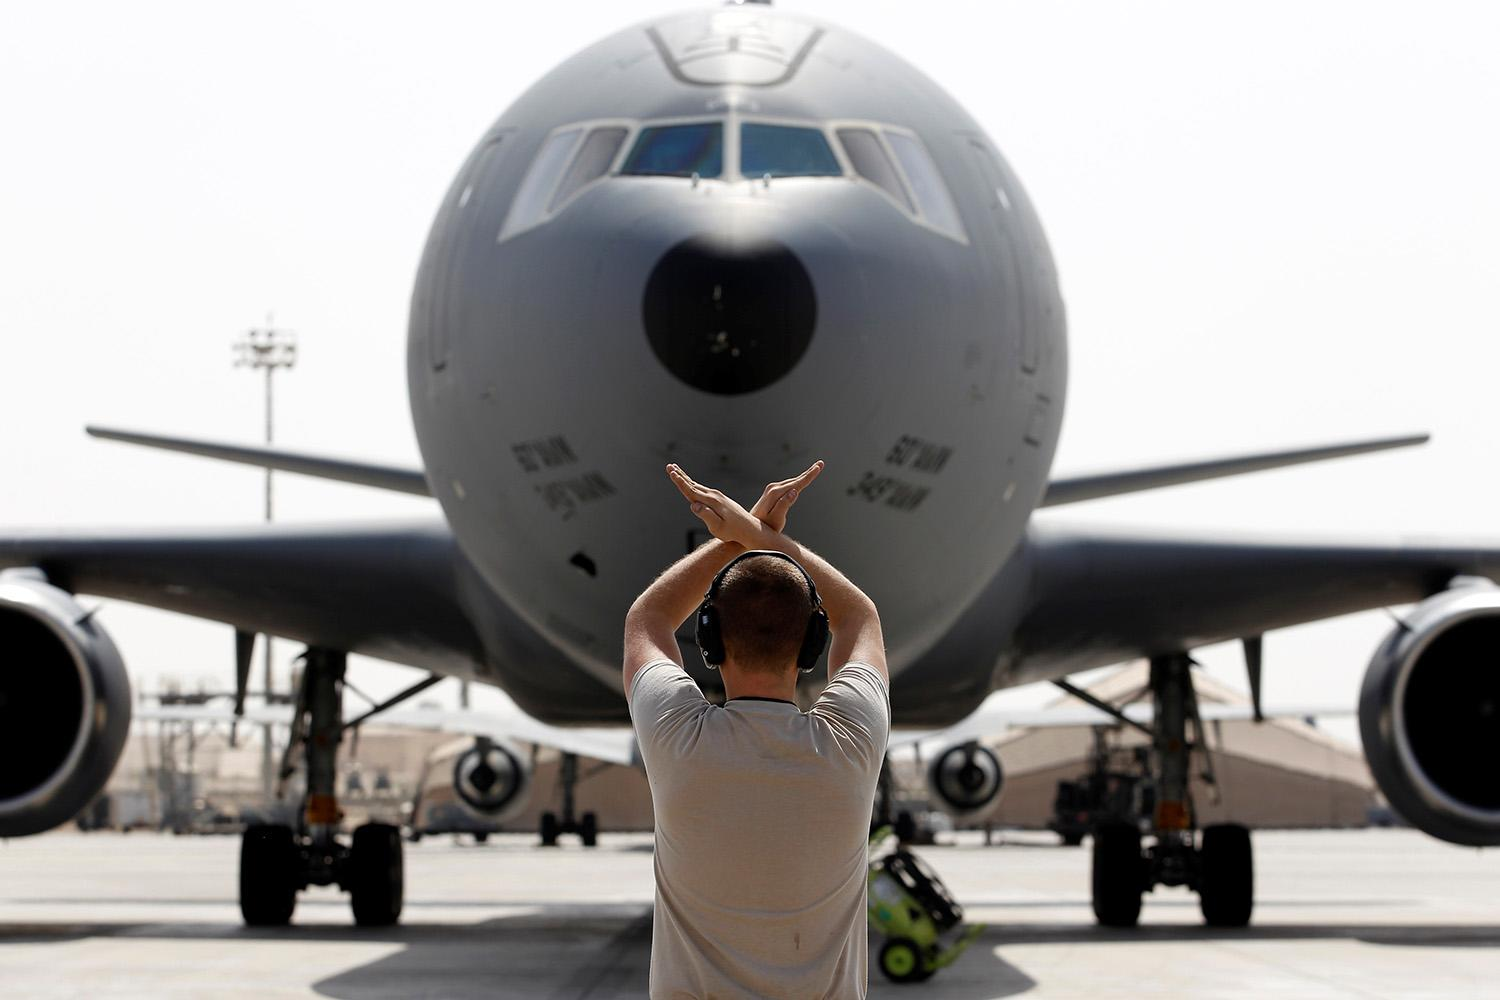 <p>A U.S .Air Force ground director guides the KC-10 Extender upon its arrival after providing mid-air refueling support to Operation Inherent Resolve over Iraq and Syria, at an Air Force Base in the Arabian Gulf, March 13, 2017. (Photo: Hamad Mohammed/Reuters) </p>